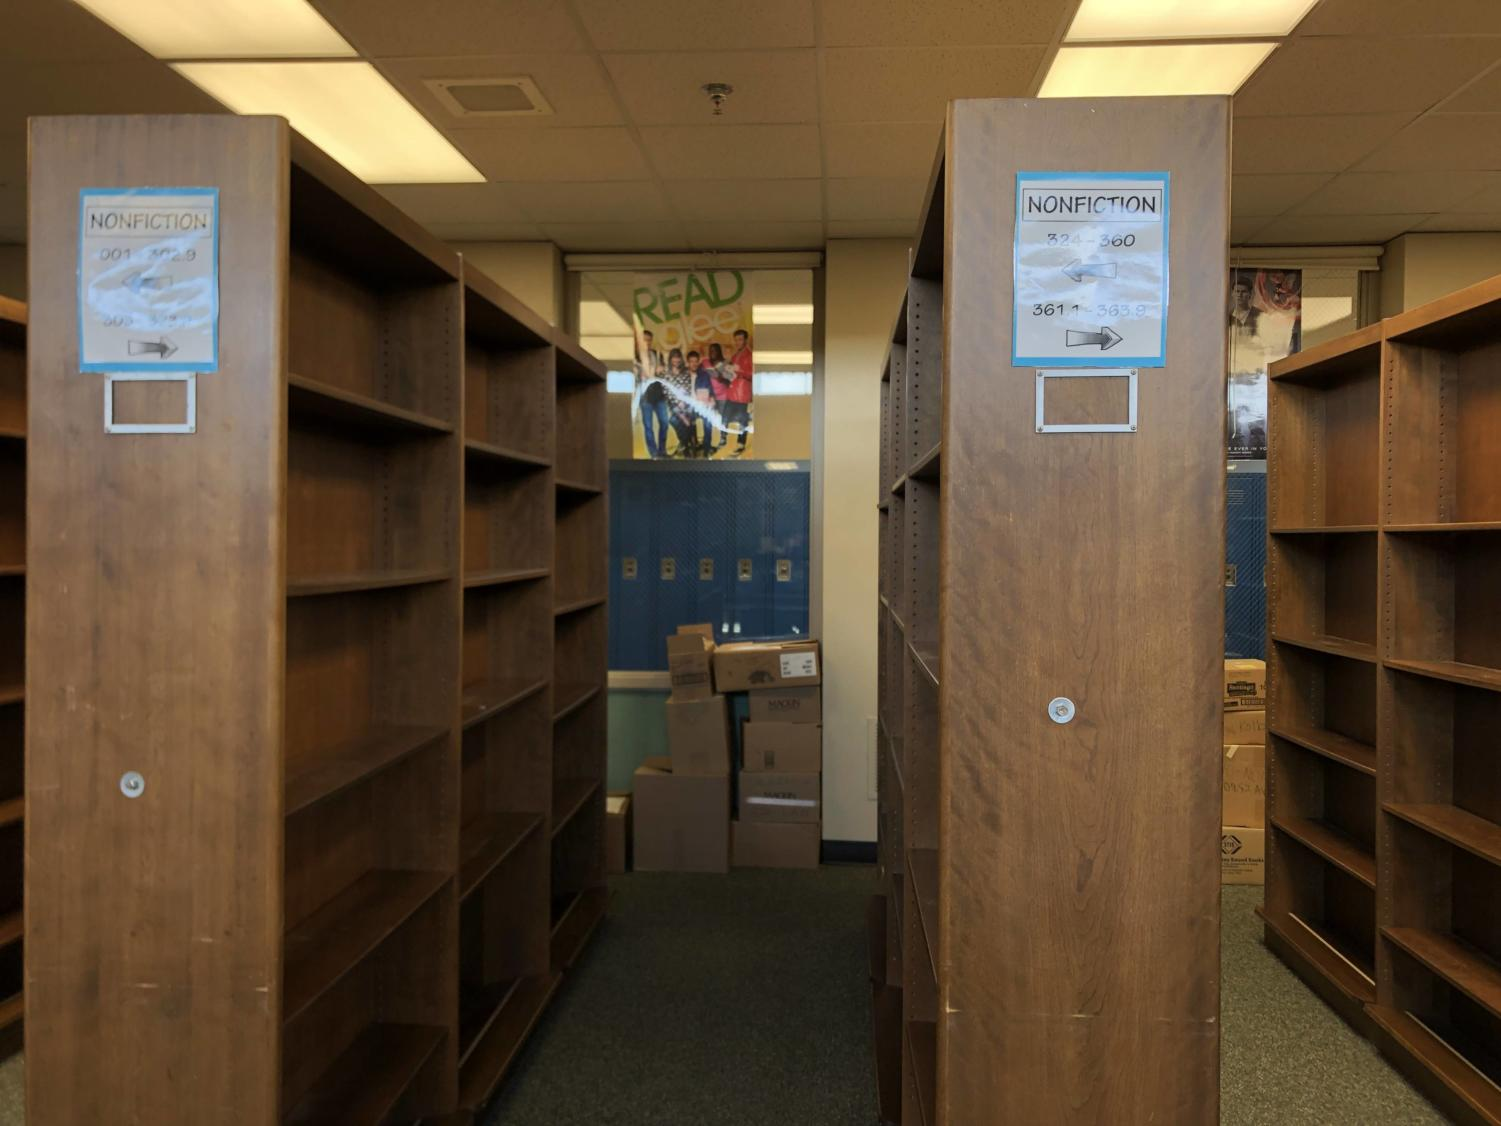 Because the library is getting new carpet, books have been removed from the shelves. Luckily, this will make adding a growing Spanish section a lot easier.